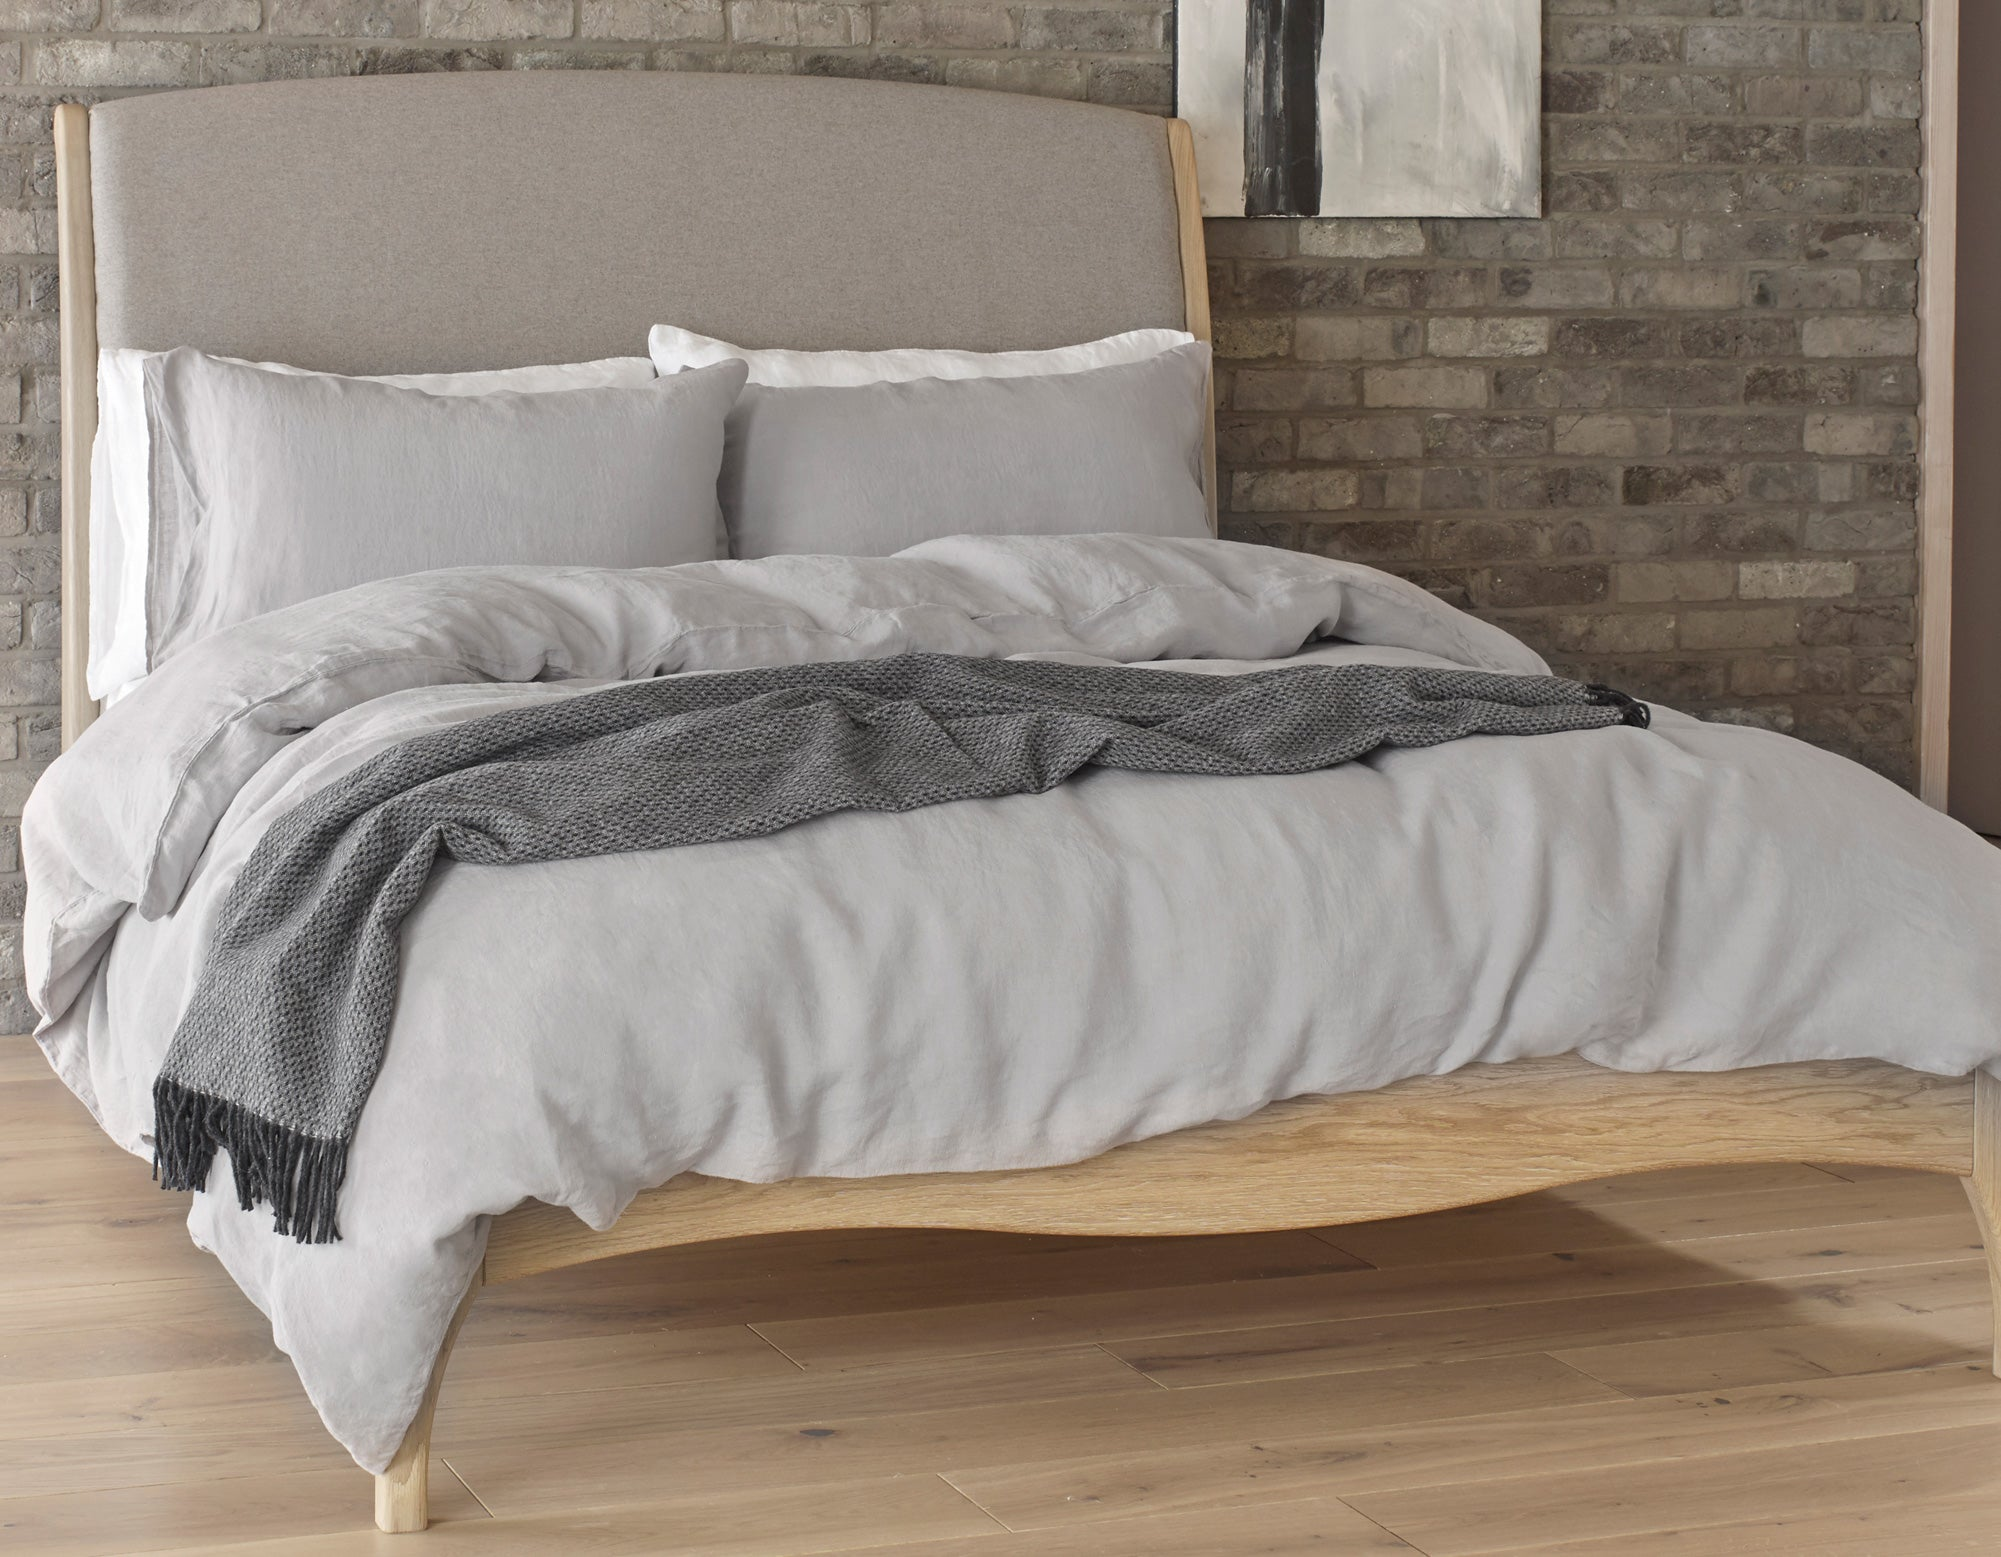 Linen Duvet Cover in Calm Grey | scooms